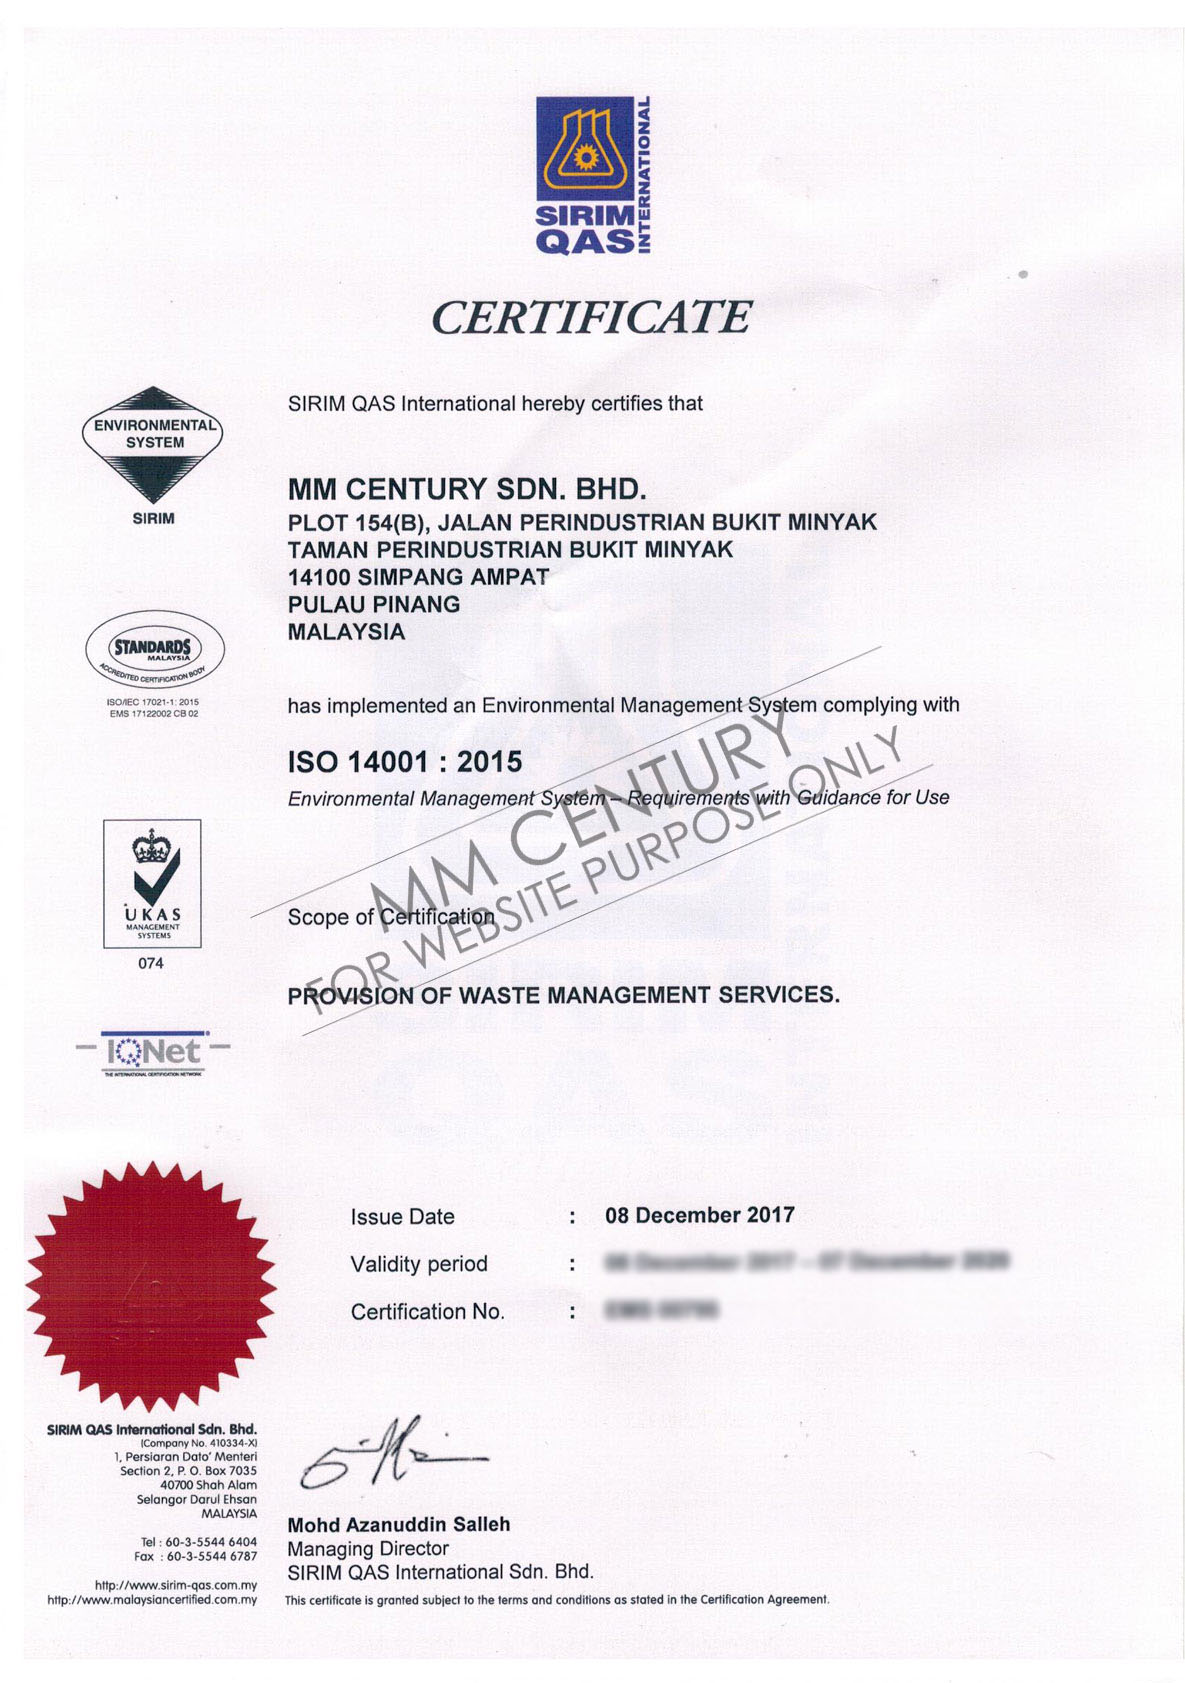 MM Century-ISO 14001: 2015, Environmental System Certification